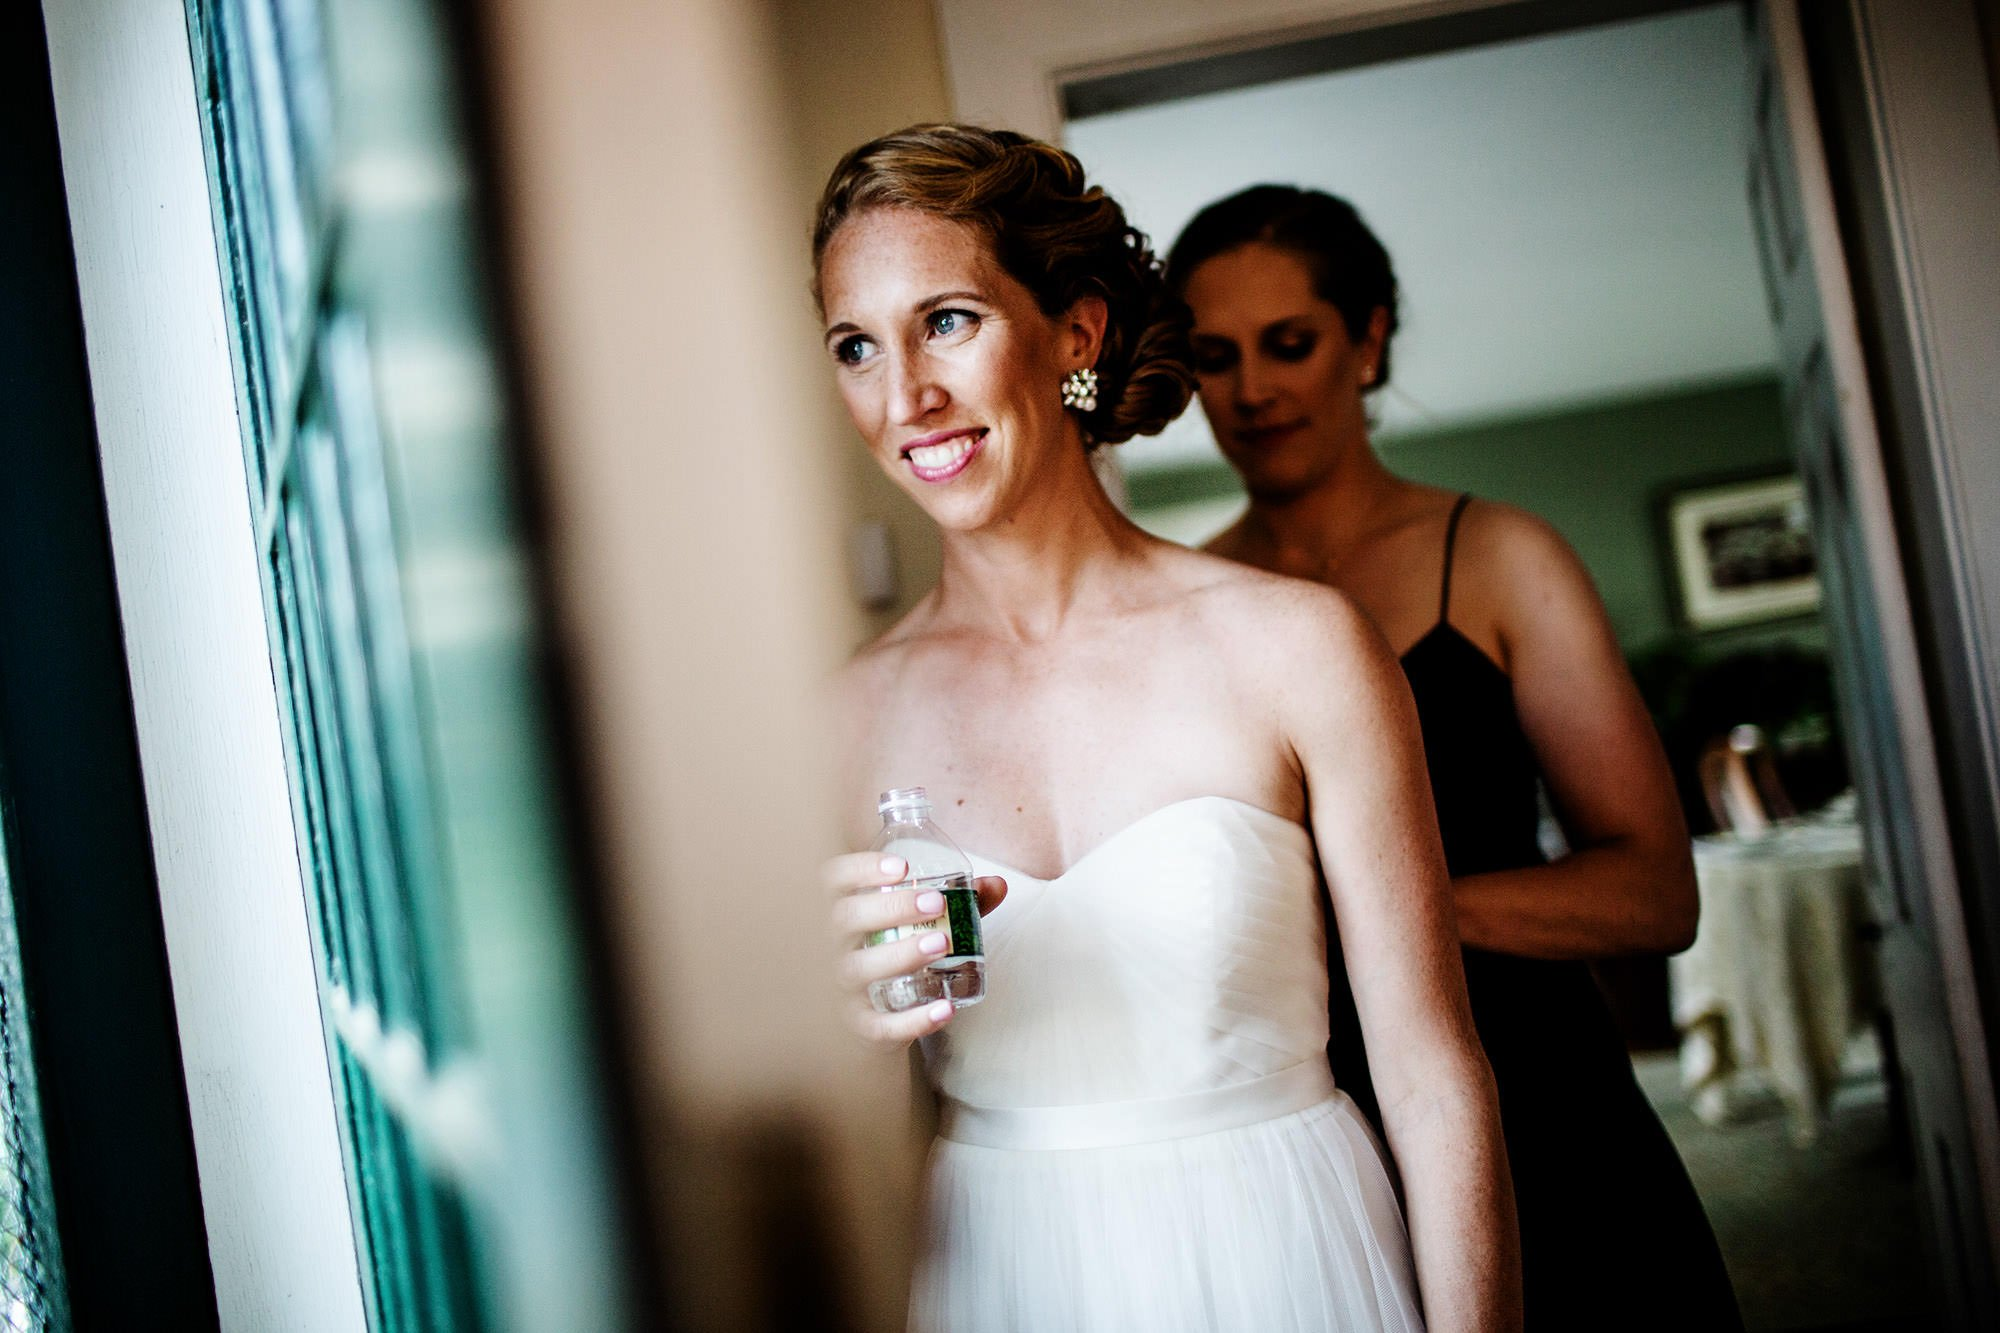 The bride waits for her wedding ceremony to begin.